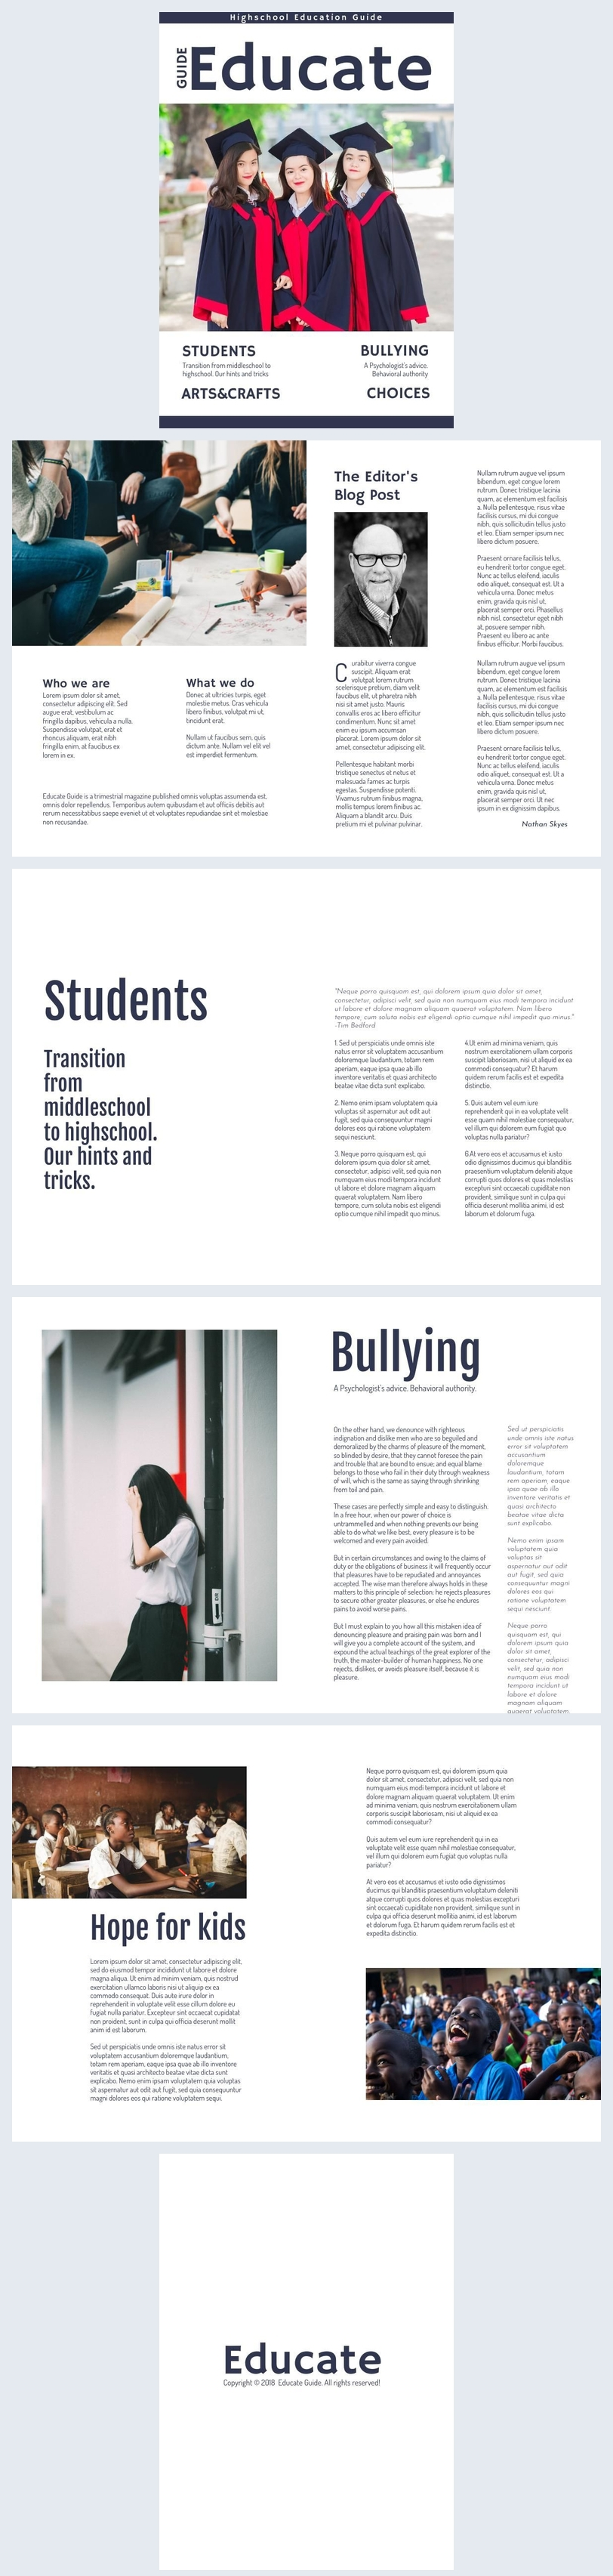 School Magazine Design